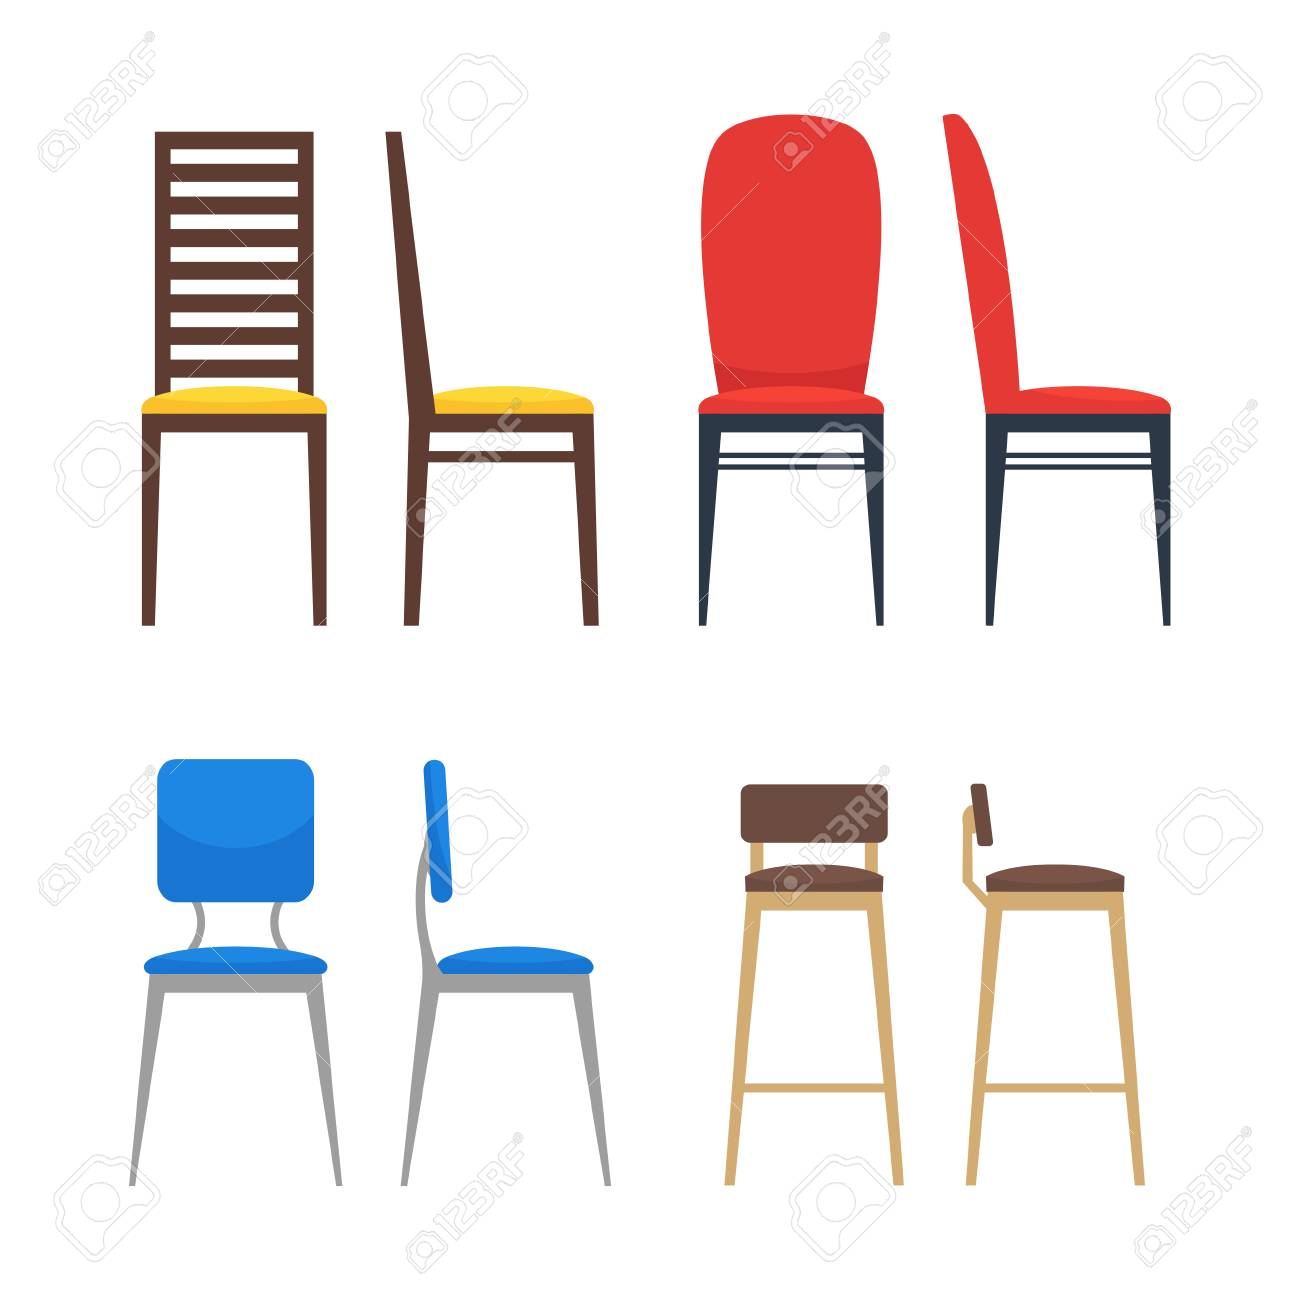 Colorful Chairs Icon Set Home Seating Furniture For Living Room